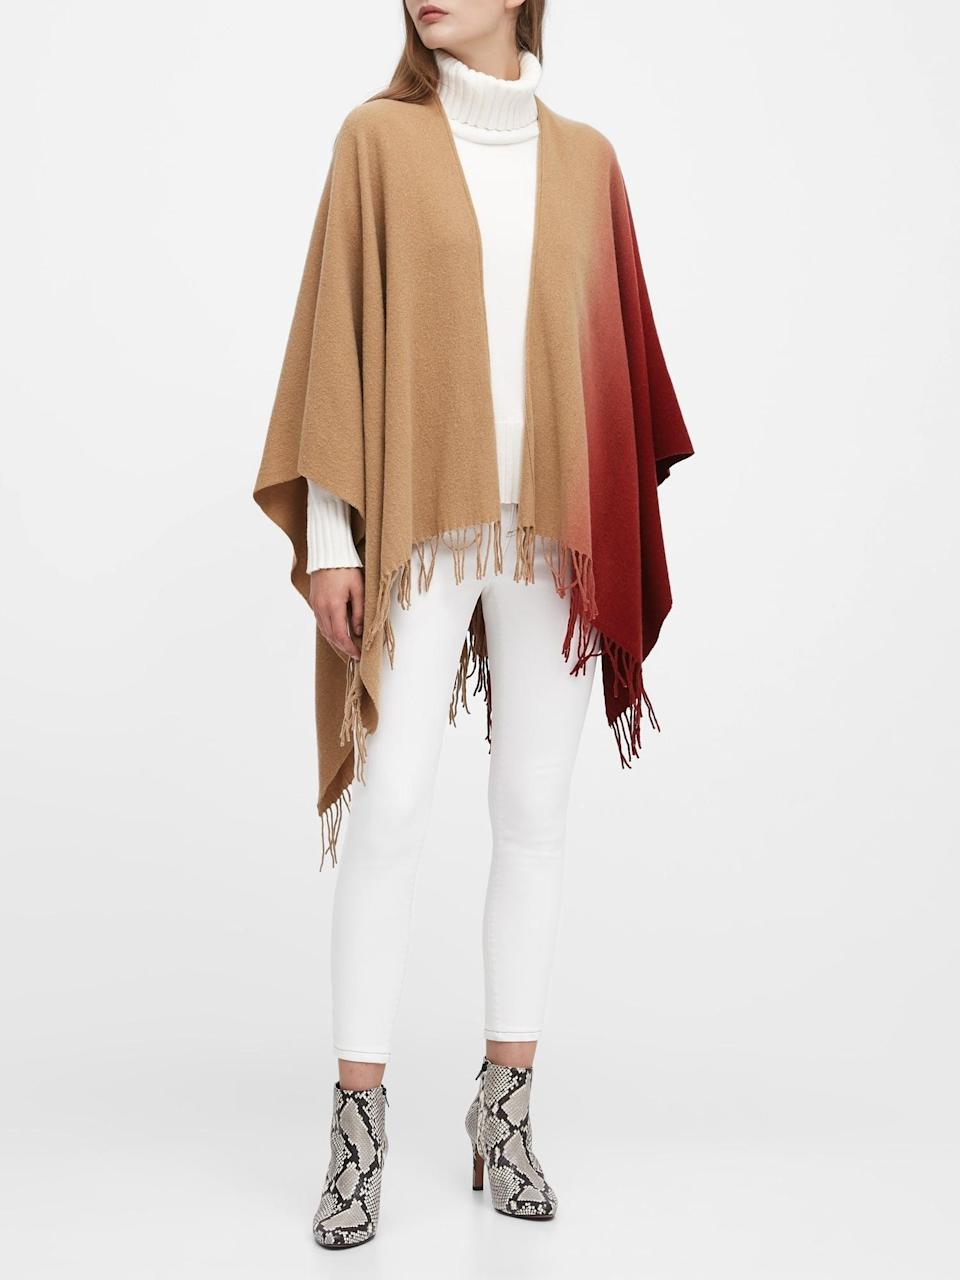 "<p>We love the style of this <a href=""https://www.popsugar.com/buy/Banana-Republic-Ombr%C3%A9-Wool-Blend-Poncho-528415?p_name=Banana%20Republic%20Ombr%C3%A9%20Wool-Blend%20Poncho&retailer=bananarepublic.gap.com&pid=528415&price=118&evar1=fab%3Aus&evar9=36291197&evar98=https%3A%2F%2Fwww.popsugar.com%2Fphoto-gallery%2F36291197%2Fimage%2F46988974%2FBanana-Republic-Ombr%C3%A9-Wool-Blend-Poncho&list1=shopping%2Choliday%2Cwinter%2Cgift%20guide%2Cwinter%20fashion%2Choliday%20fashion%2Cfashion%20gifts&prop13=api&pdata=1"" rel=""nofollow noopener"" class=""link rapid-noclick-resp"" target=""_blank"" data-ylk=""slk:Banana Republic Ombré Wool-Blend Poncho"">Banana Republic Ombré Wool-Blend Poncho</a> ($118).</p>"